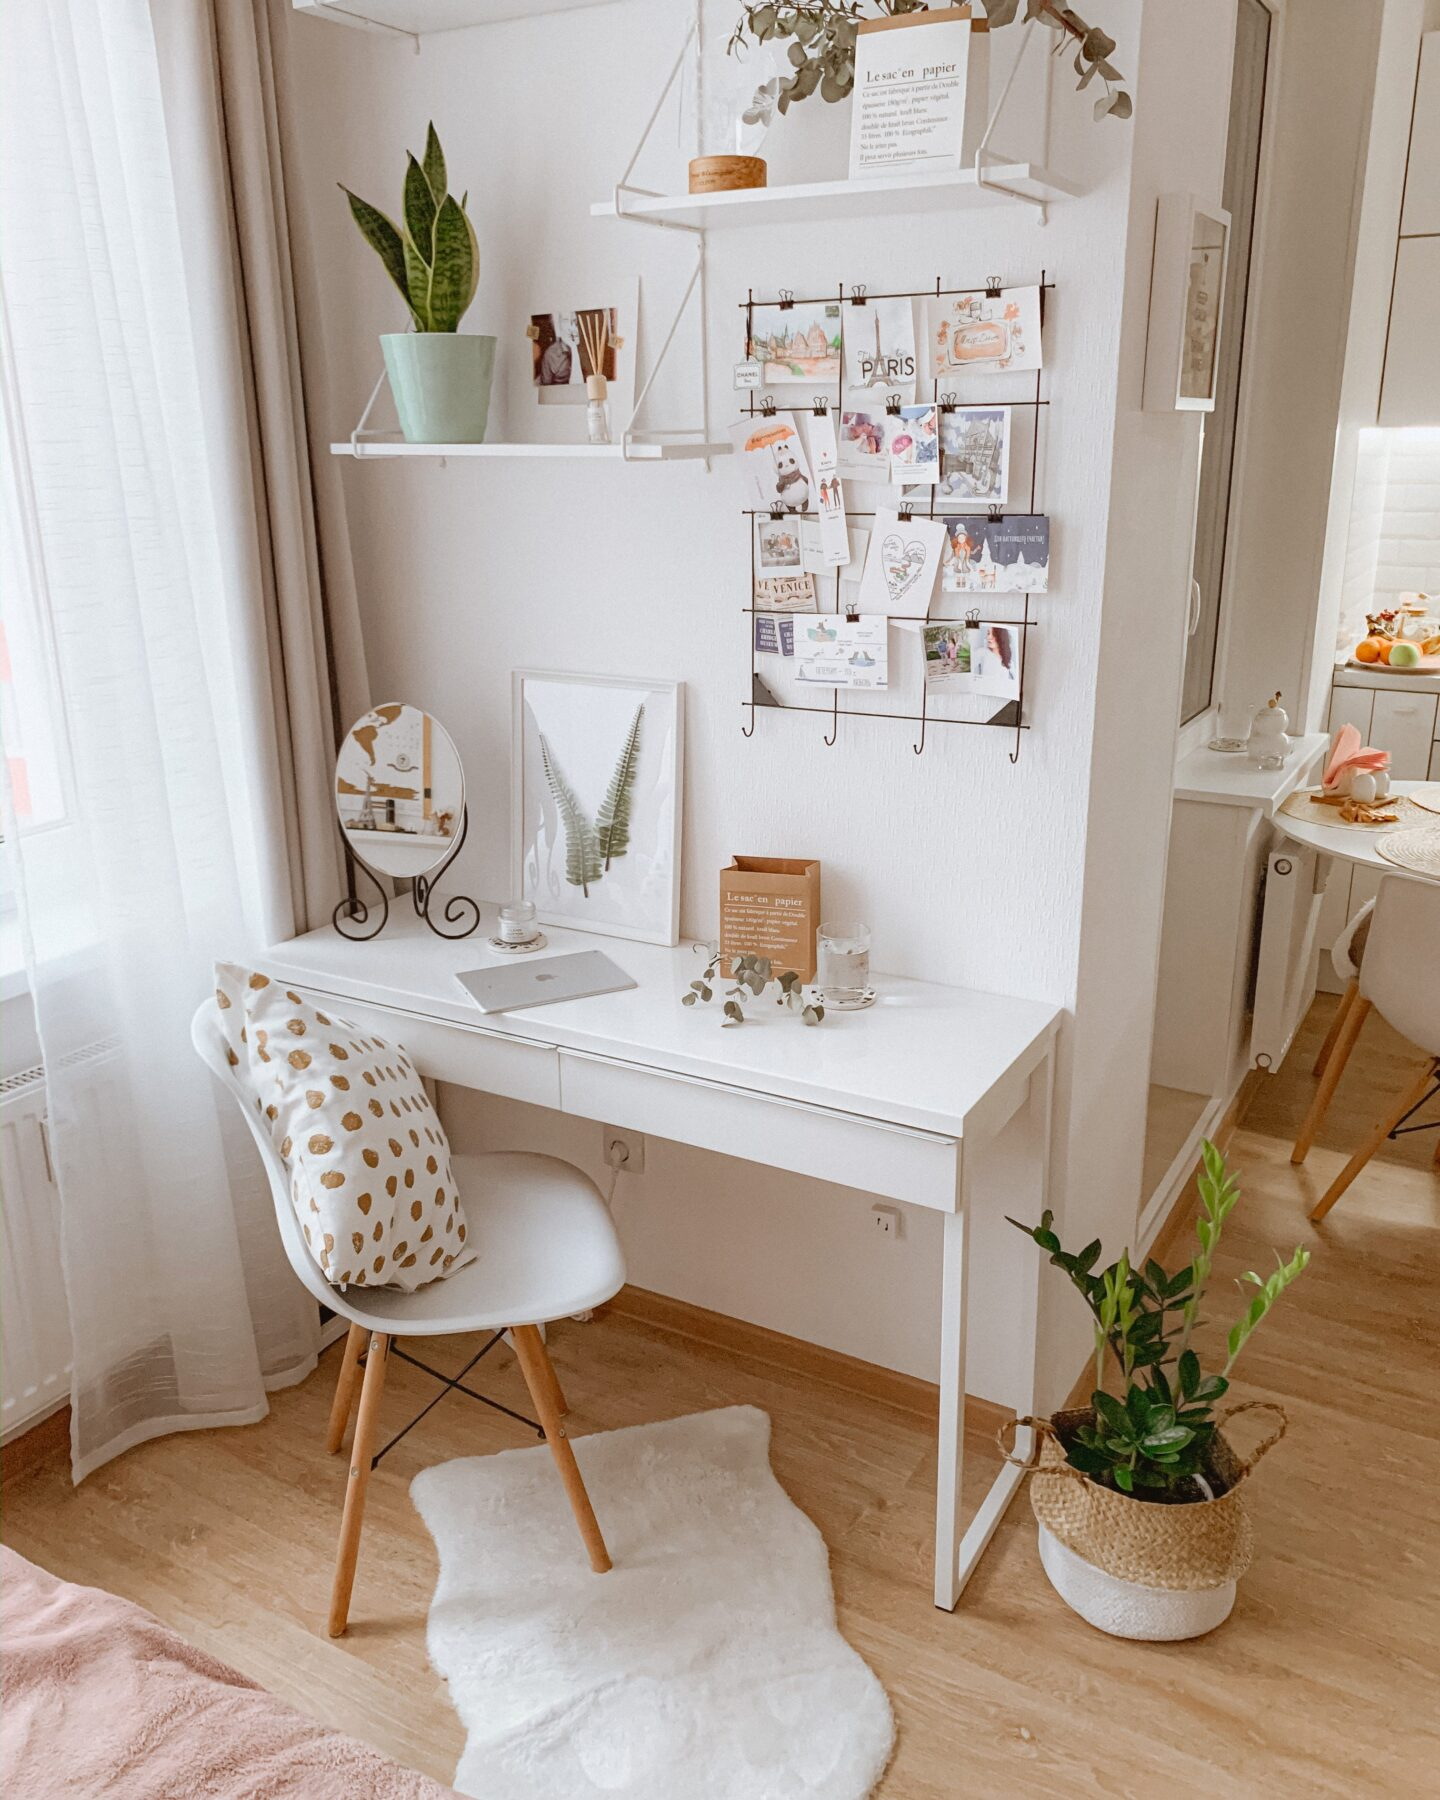 Rearranging furniture is an easy and free way to decorate your bedroom.